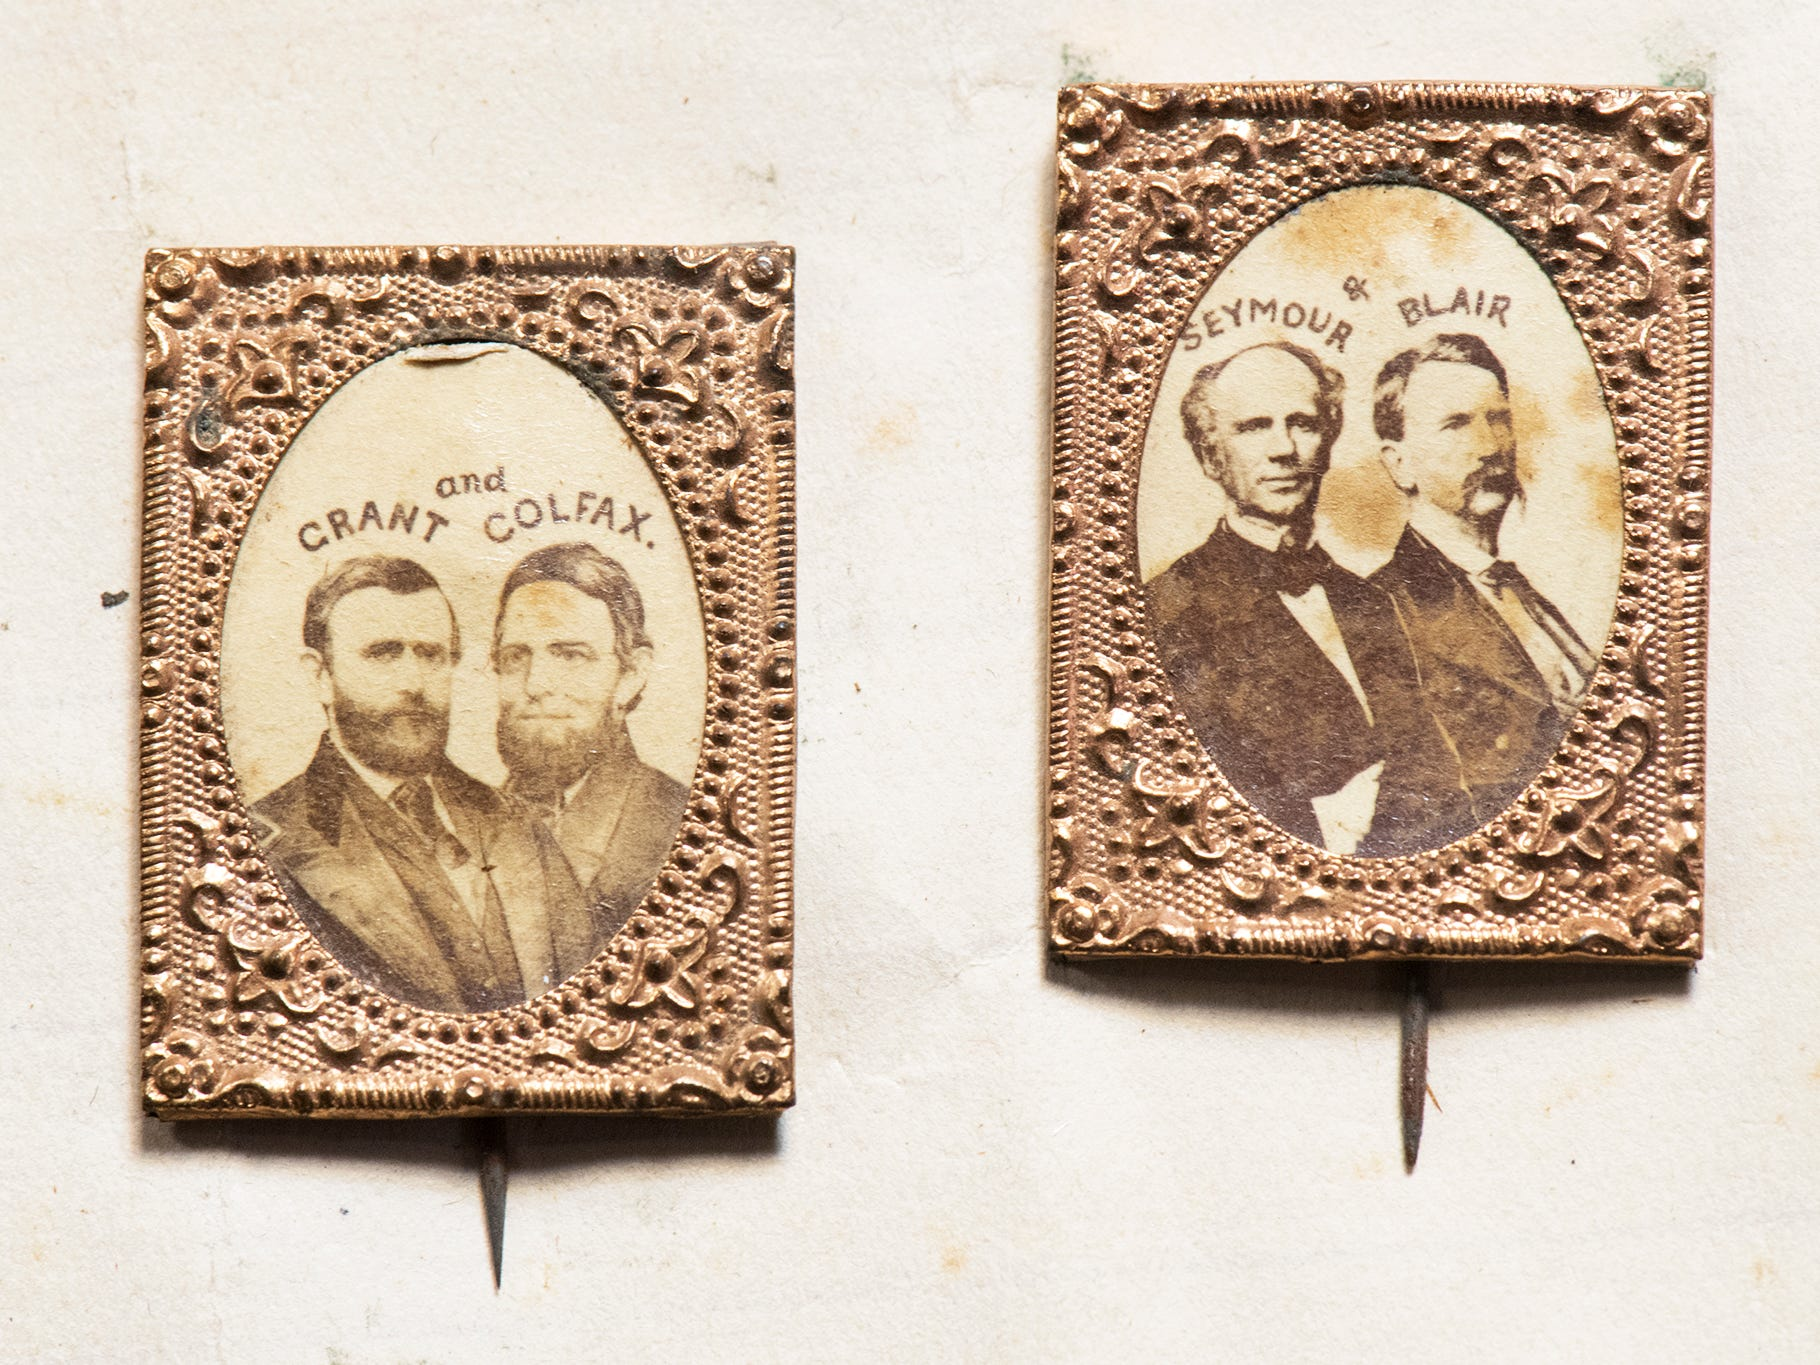 These are political pins for the 1868 U.S. presidential election. Albumin jugate photographs with views of Ulysses S. Grant and Schuyler Colfax, left, and Horatio Seymour and Francis Preston Blair Jr., right, are to be auctioned off during the Blair Family, Fine Arts & Antiques Auction at Keystone Auctions LLC Saturday, October 27, 2018 at 9 a.m.